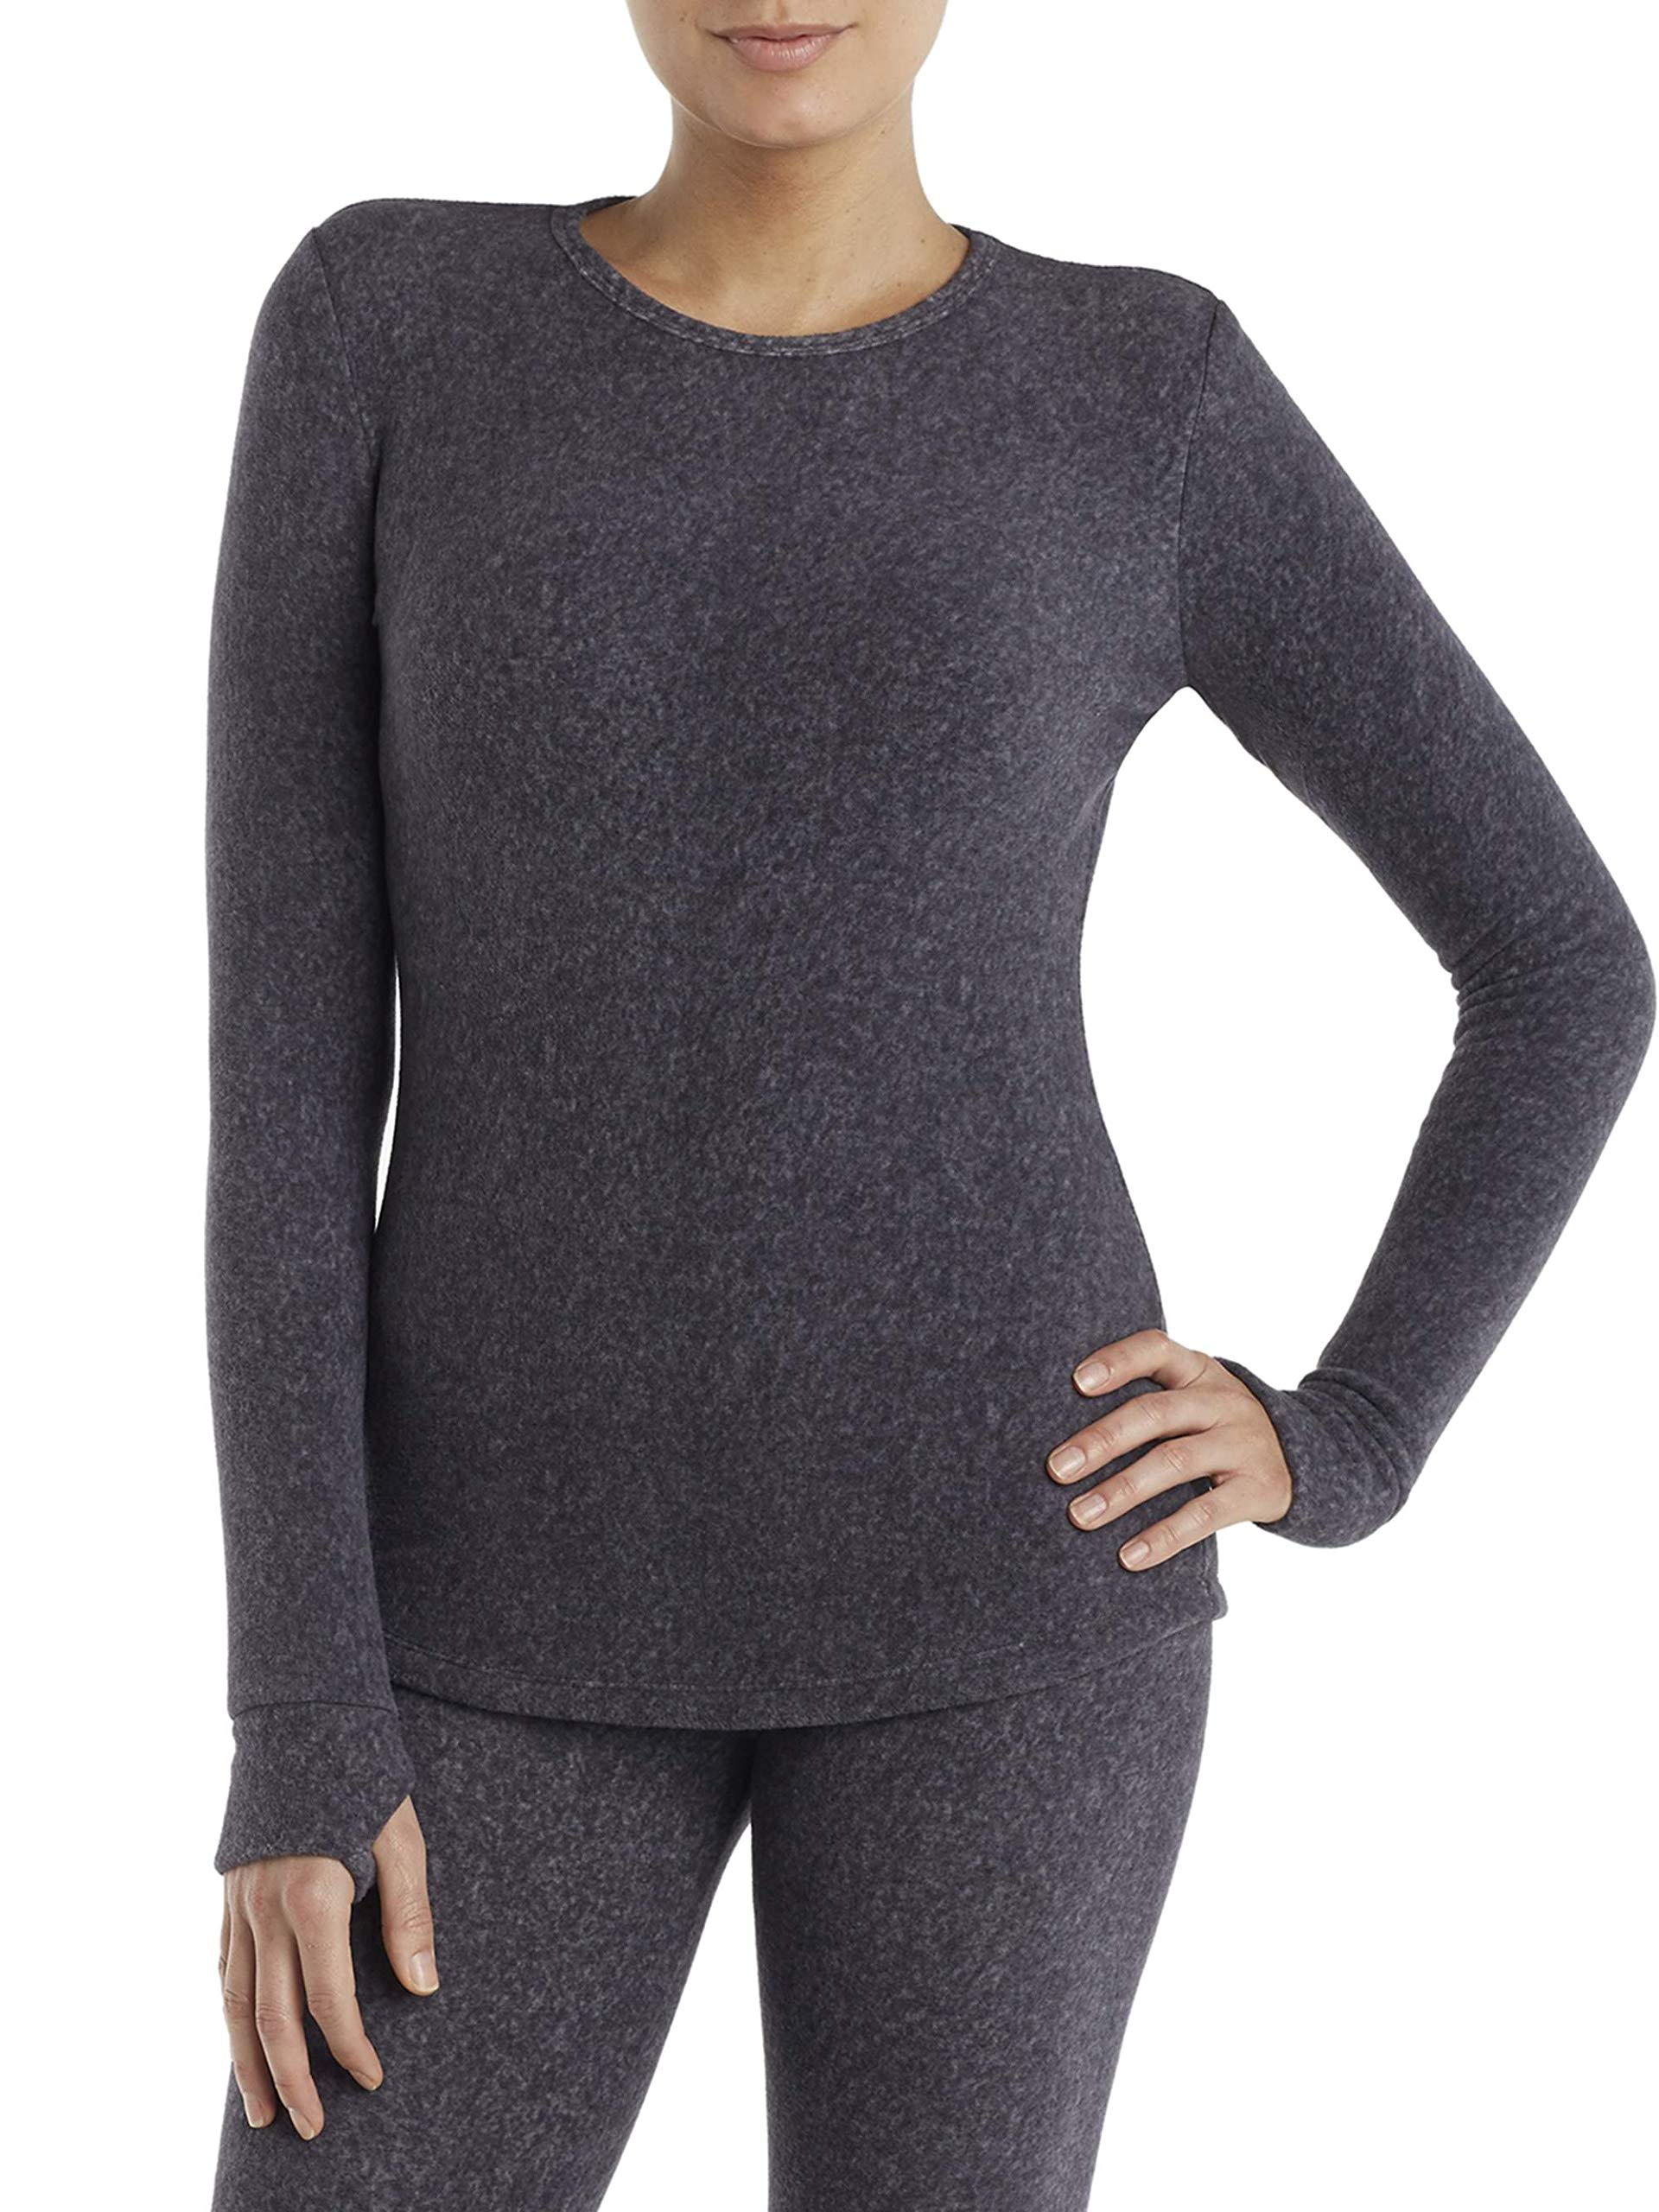 Cuddl Duds ClimateRight Women's Stretch Fleece Warm Underwear Long Sleeve Top (XXL - Grey Cationic) by Cuddl Duds